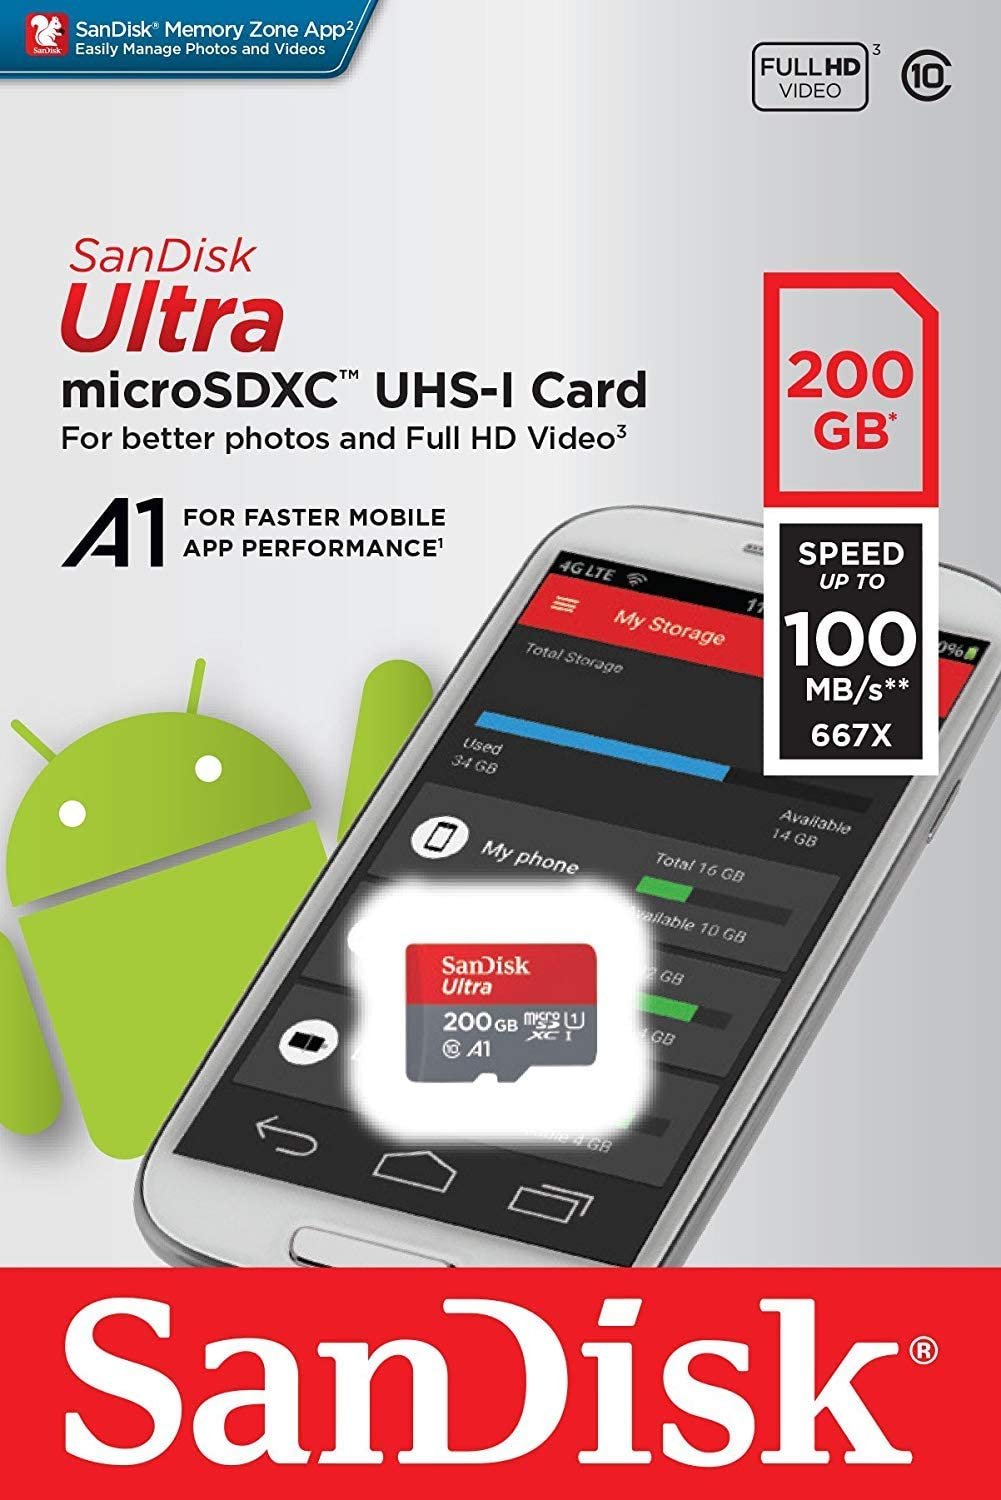 100MBs A1 U1 C10 Works with SanDisk SanDisk Ultra 200GB MicroSDXC Verified for Asus ZenFone C by SanFlash